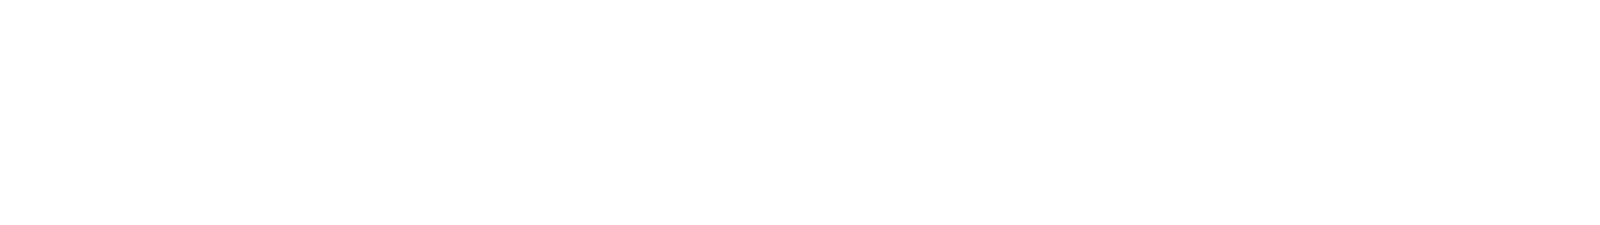 Darkwolf By Adore Coffee Roasters